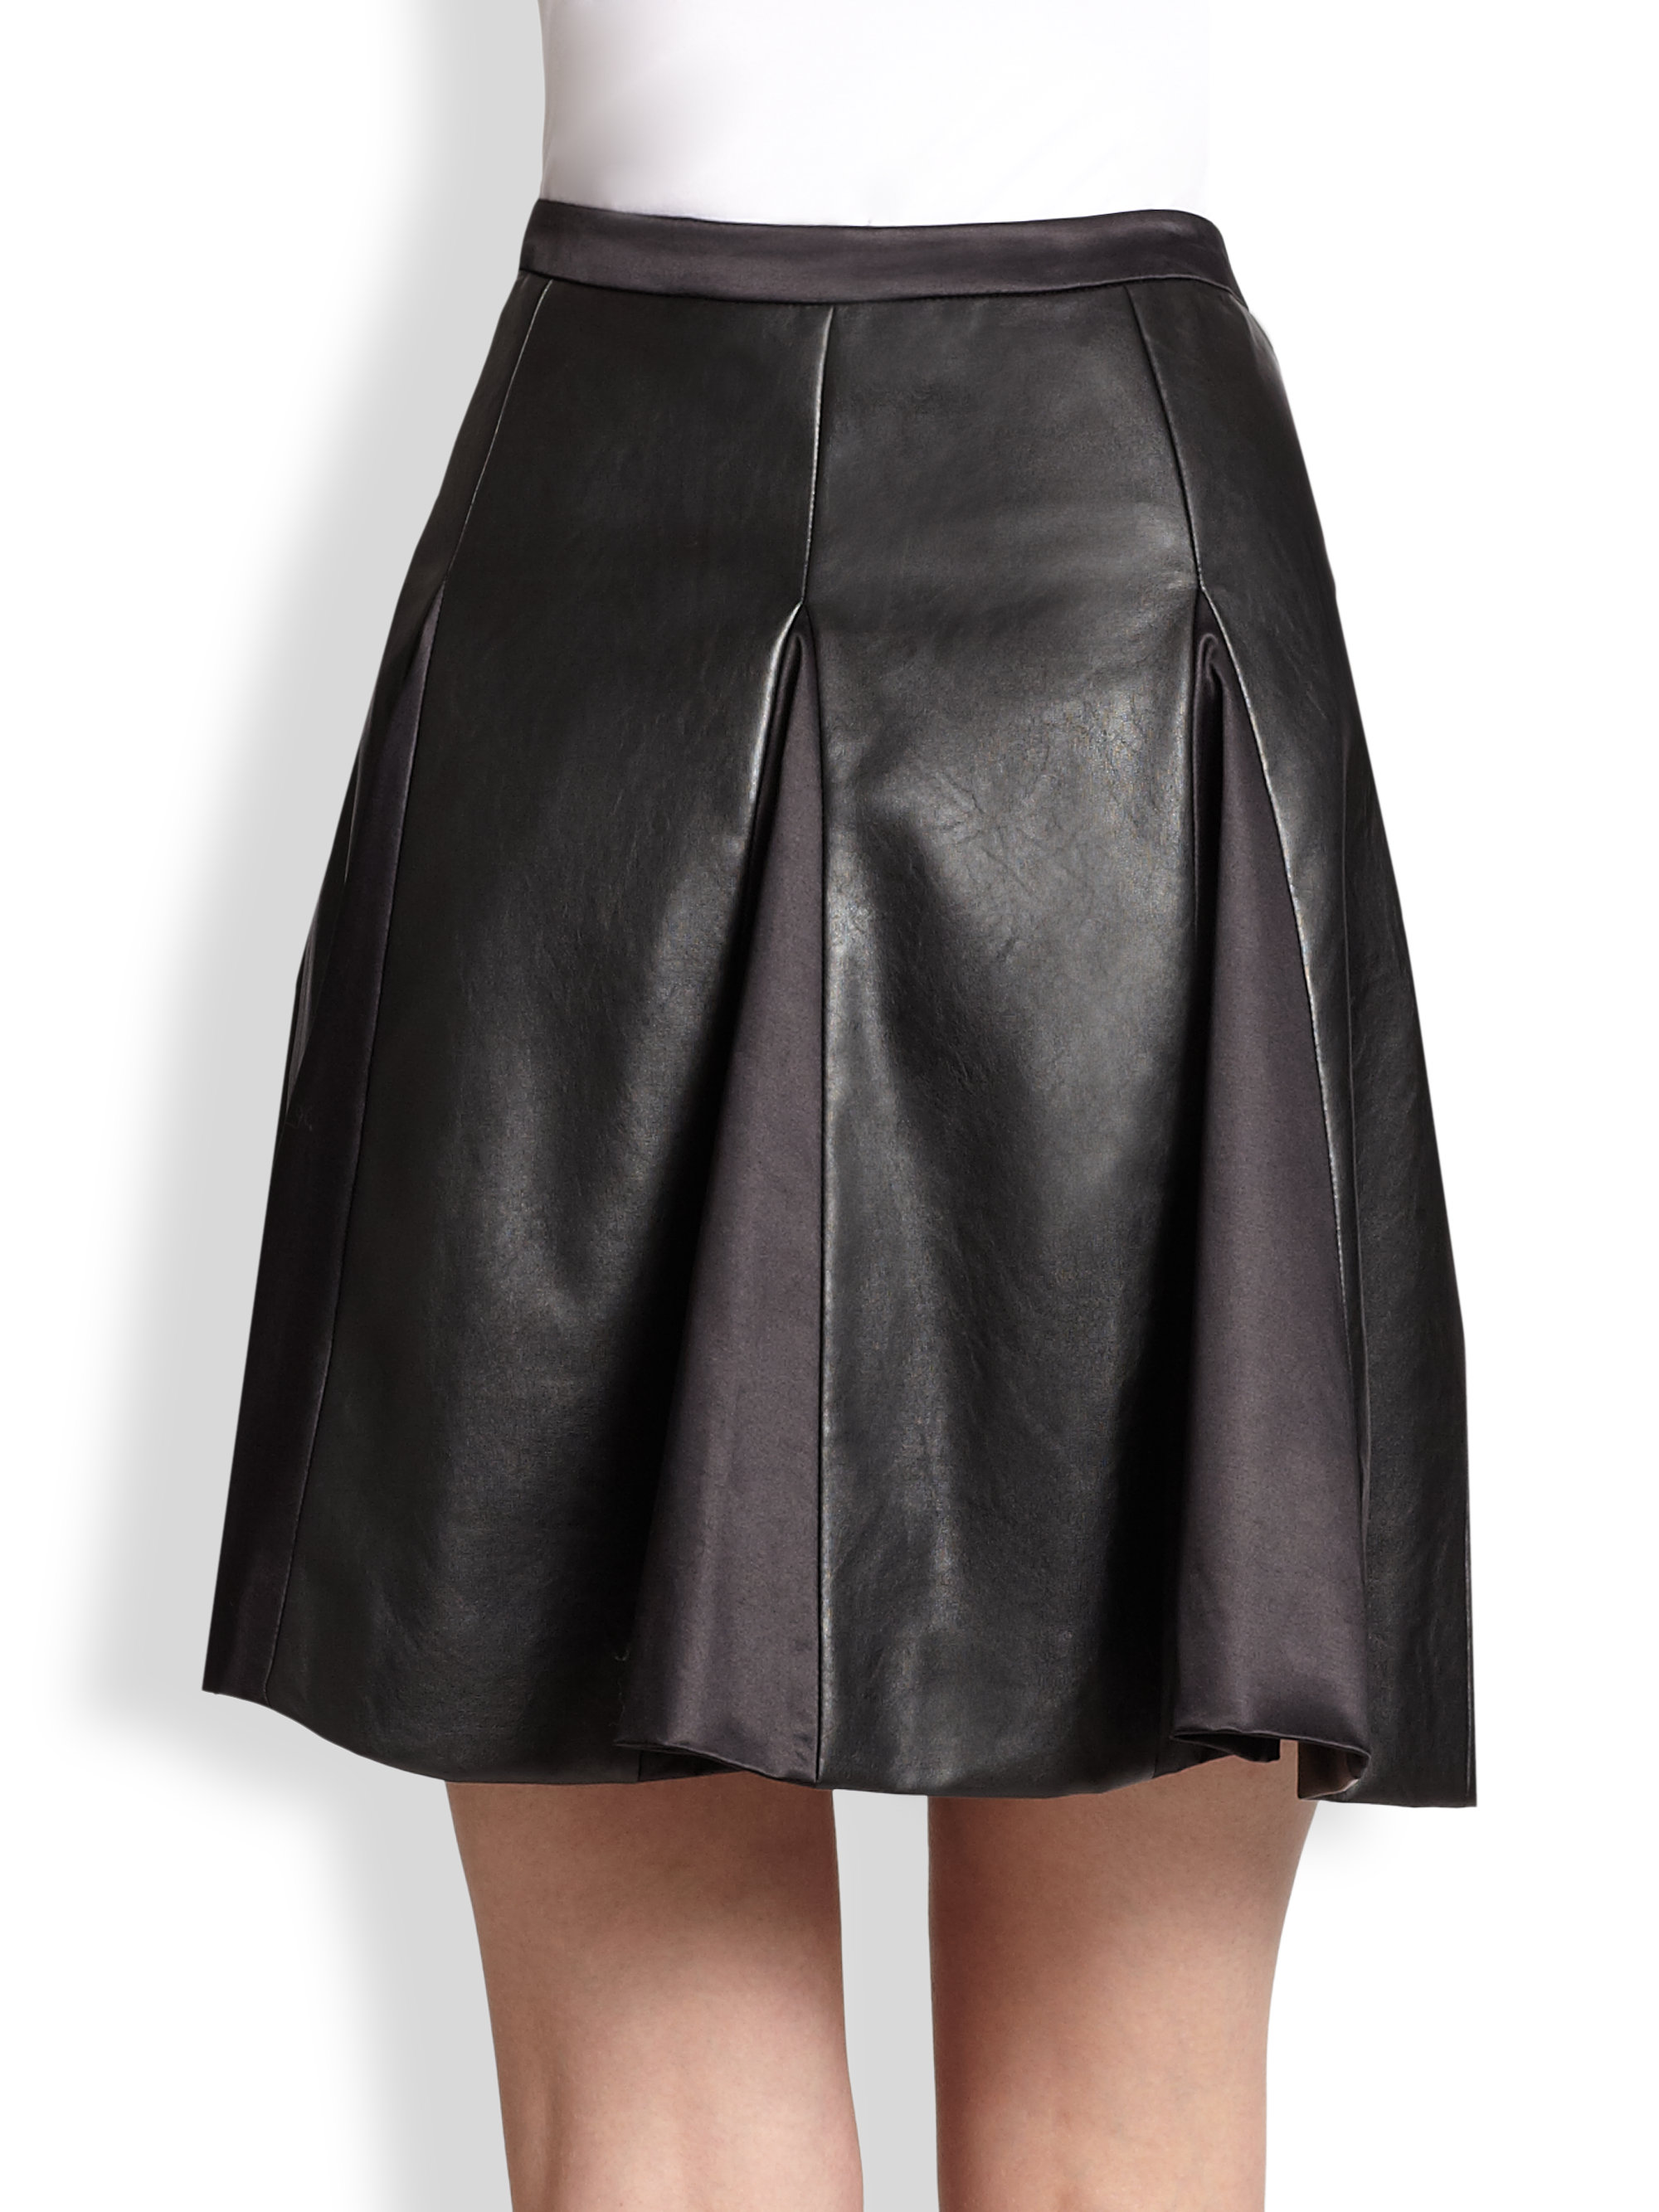 235a39d3dc Gallery. Previously sold at: Saks Fifth Avenue · Women's Black Leather  Skirts